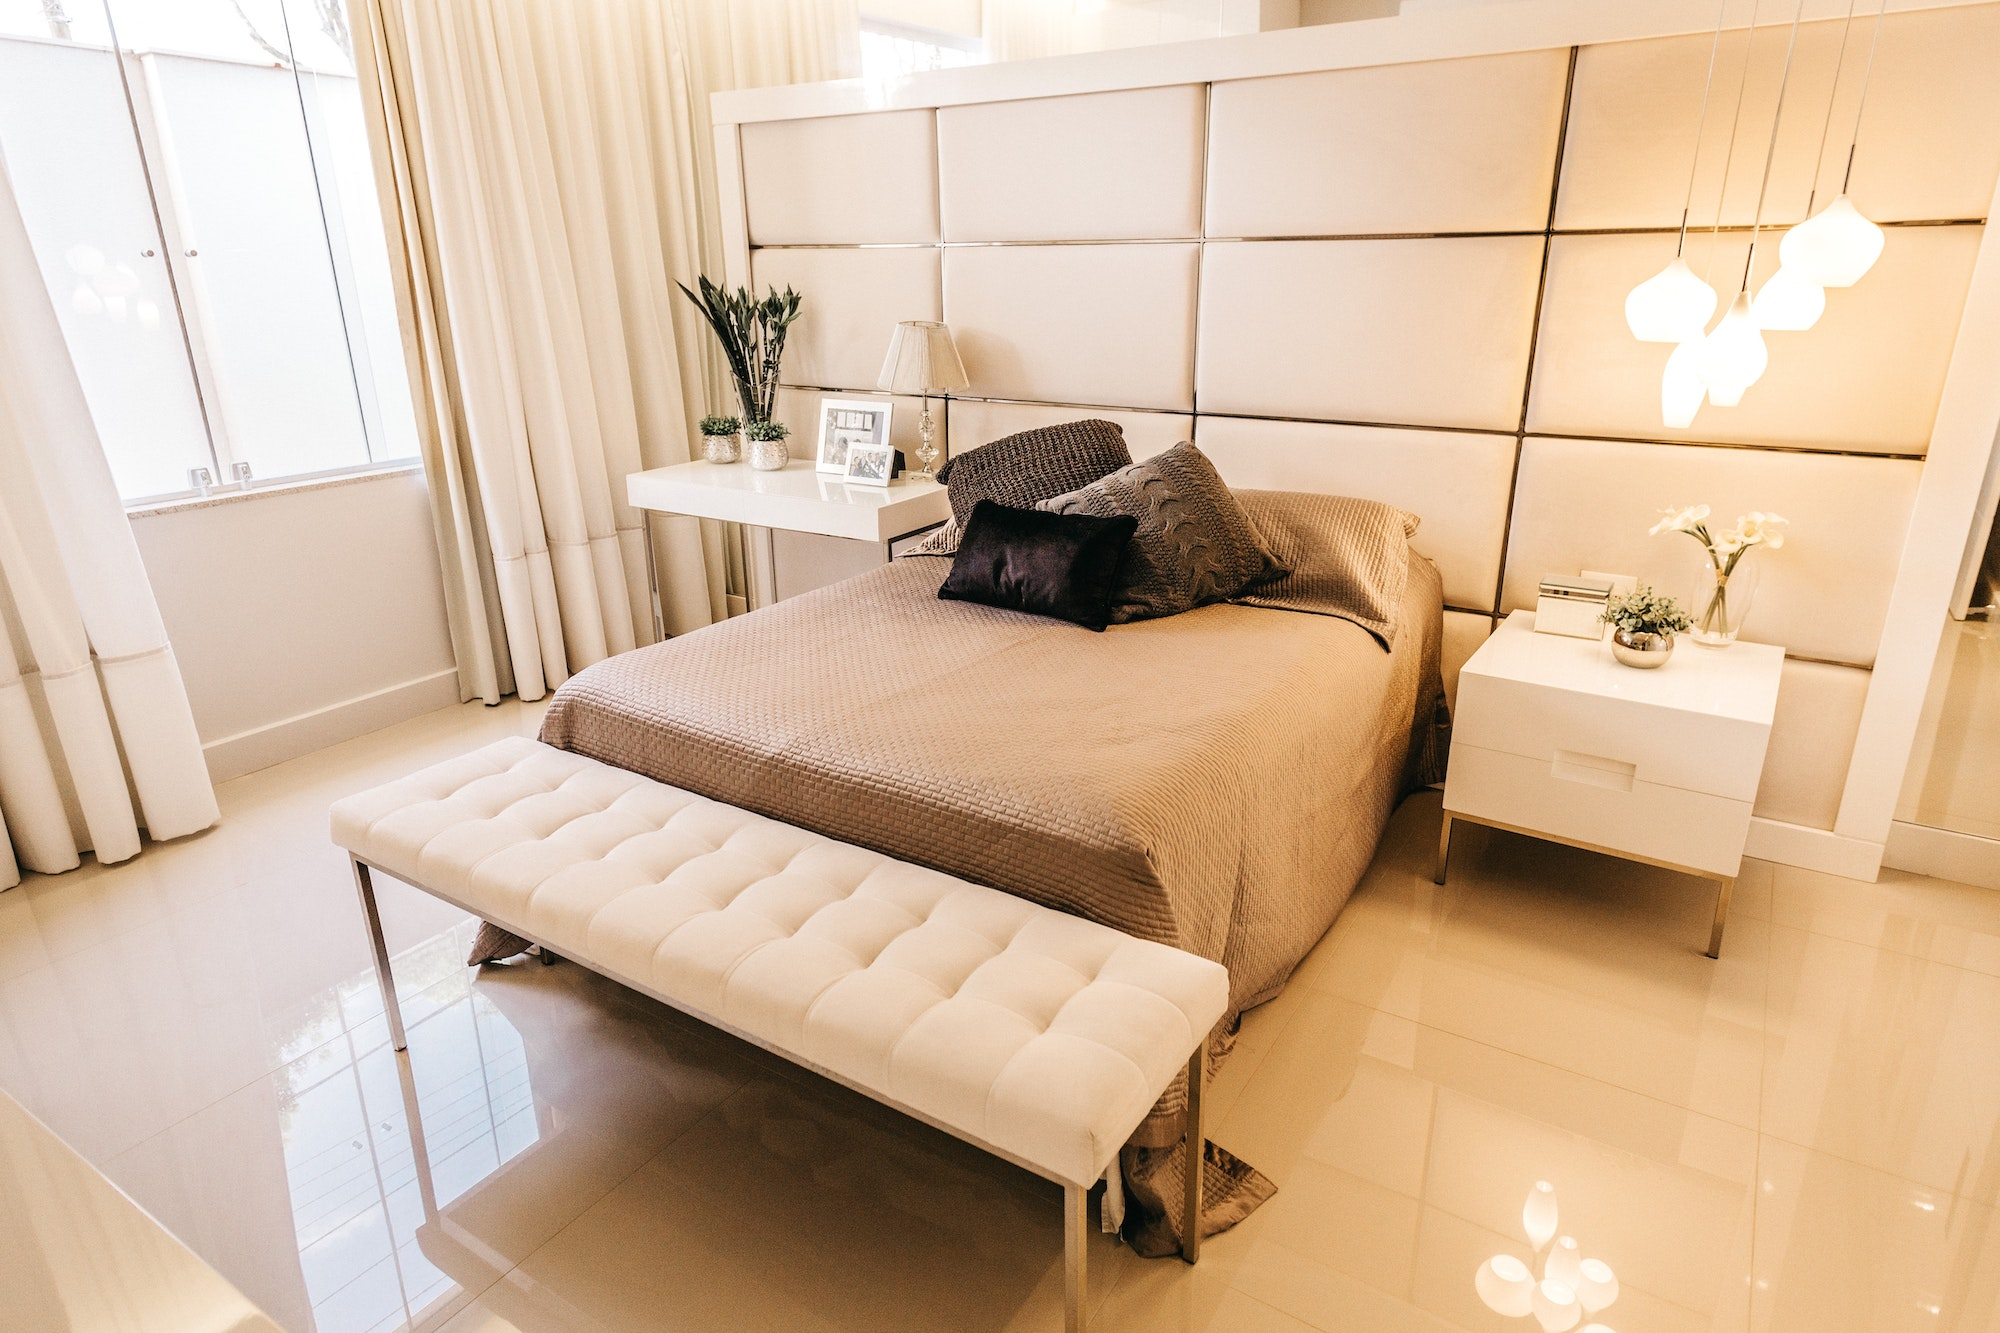 Sleep   How to create a luxurious bedroom in your home   Home Interior   Elle Blonde Luxury Lifestyle Destination Blog